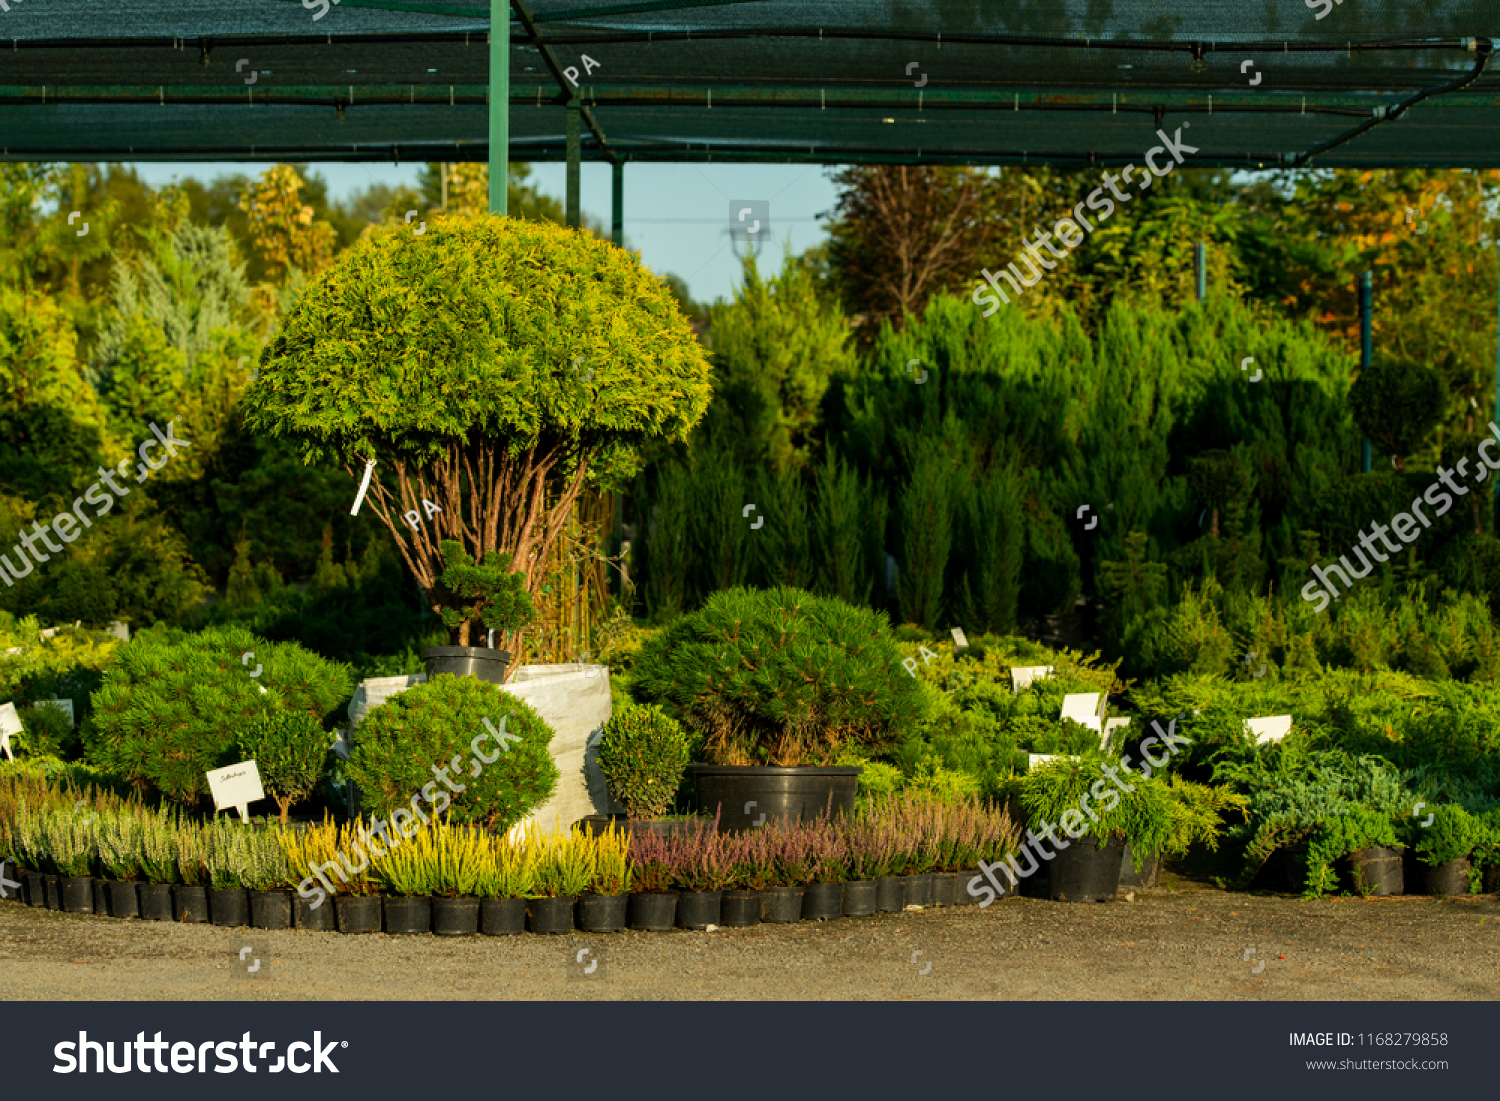 Bushes Tubs Sale Stock Photo (Edit Now) 1168279858 - Shutterstock